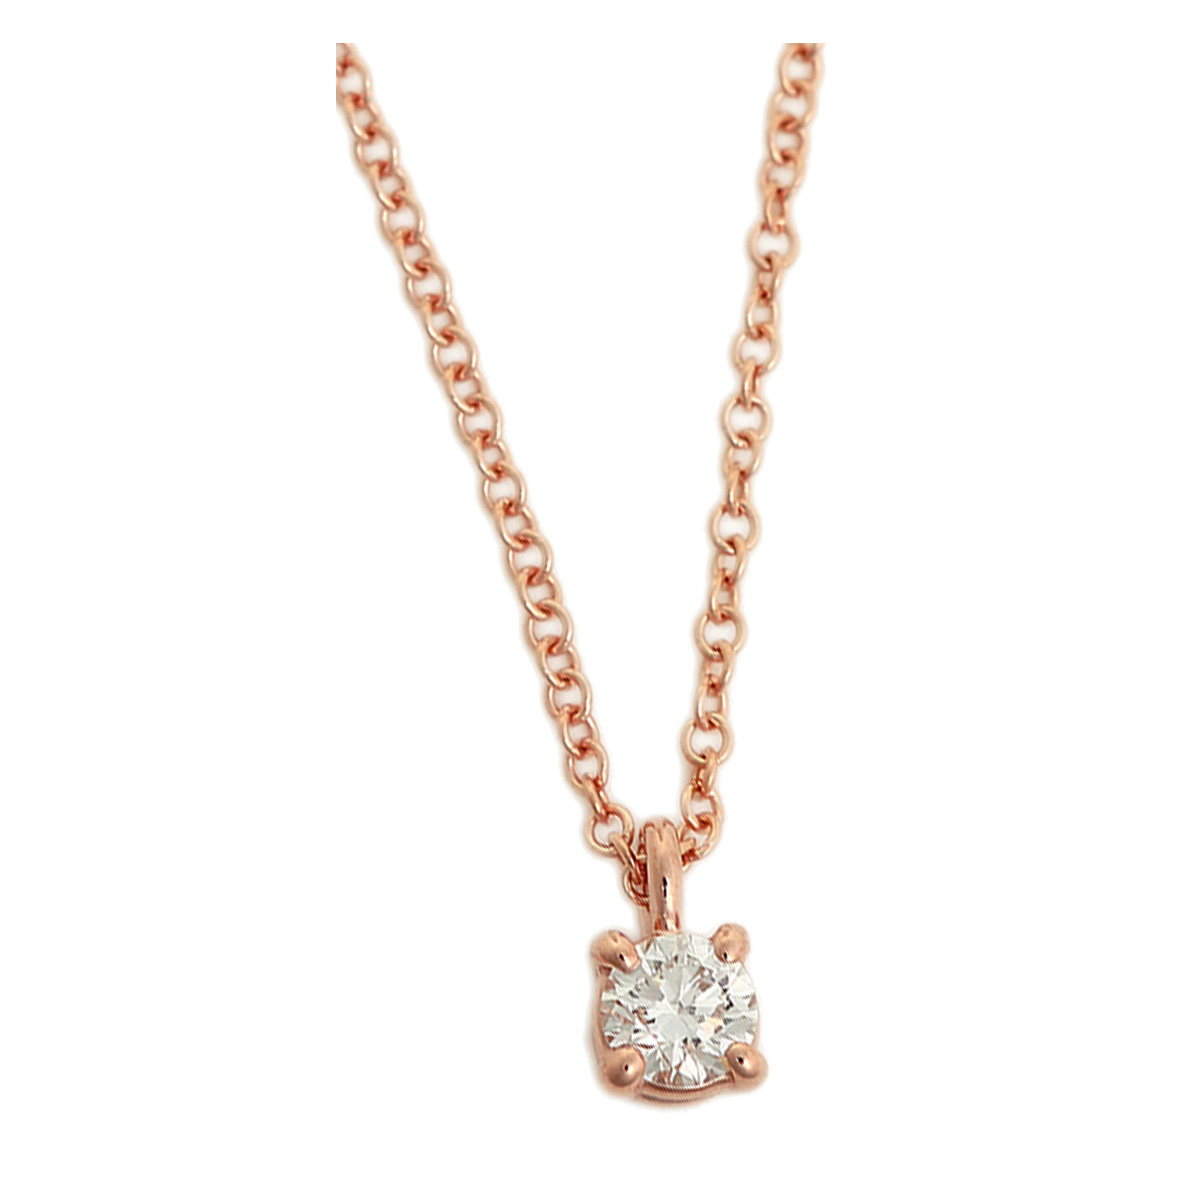 Salada bowl rakuten global market tiffany necklace single diamond tiffany necklace single diamond tiffany co solitaire diamond pendant12ct 16 in 18r 30420837 rose gold diamond aloadofball Choice Image